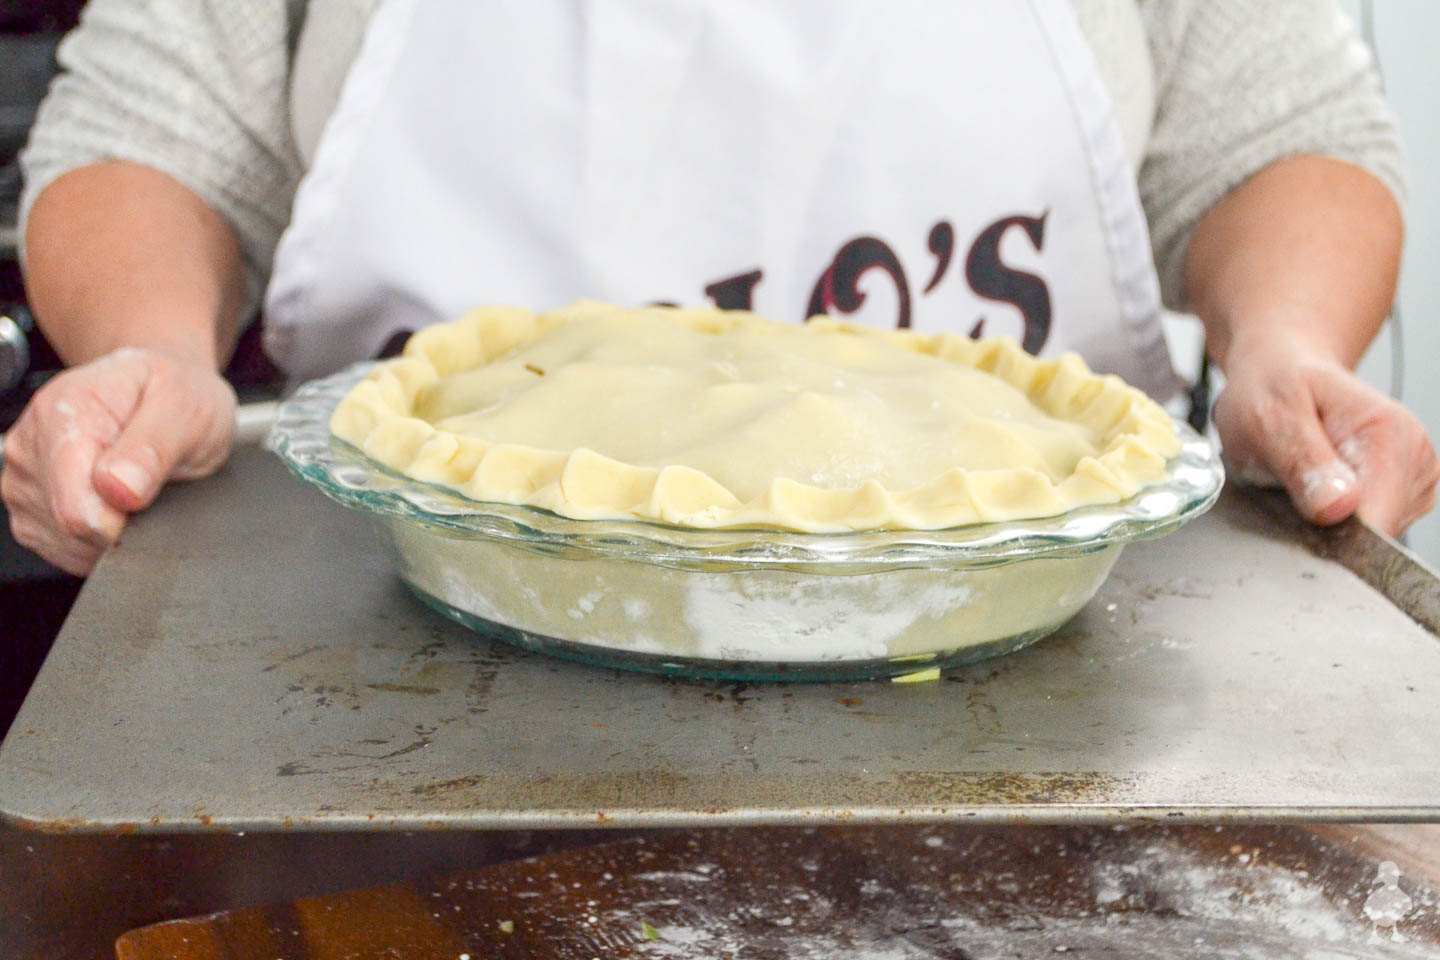 mom holding pan with apple pie ready to bake